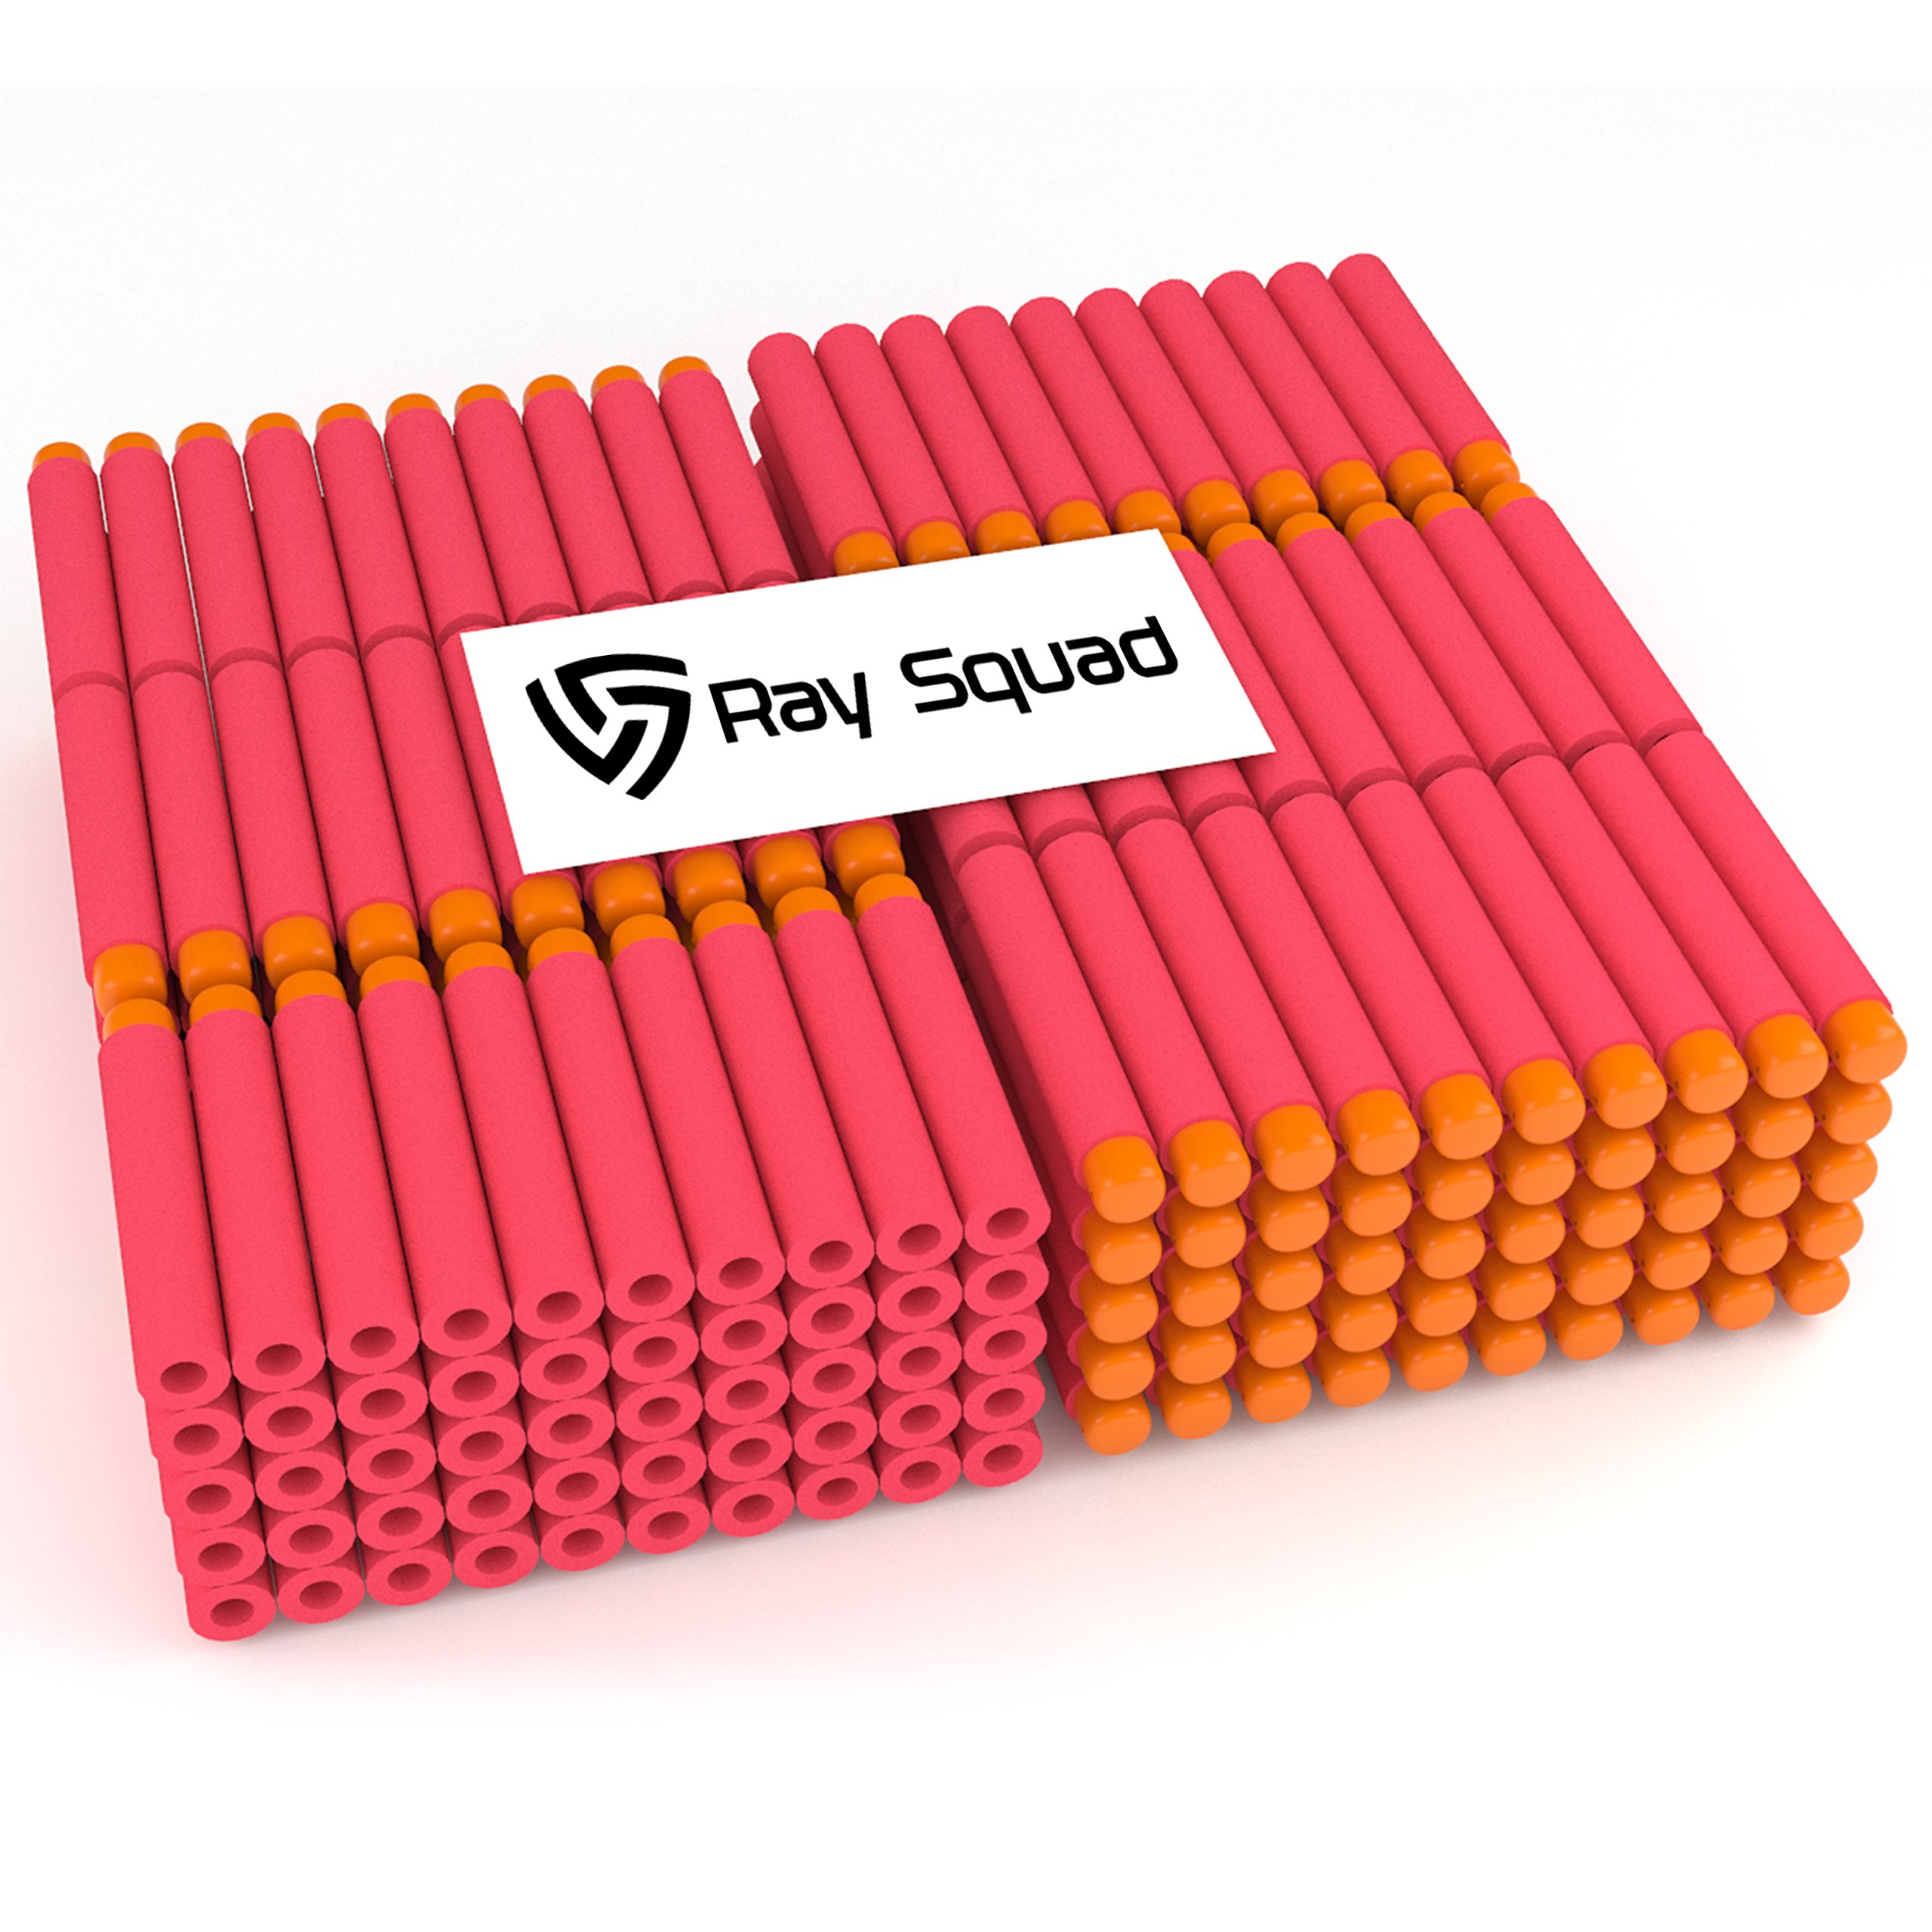 Red 300-Pieces Set, Ultimate Nerf Foam Toy Darts By Raytheon Toys, Premium Refill Bullets For N-Strike Guns, Universal Mega Pack, Firm and Safe Nerf Accessories Amazing Precision Control